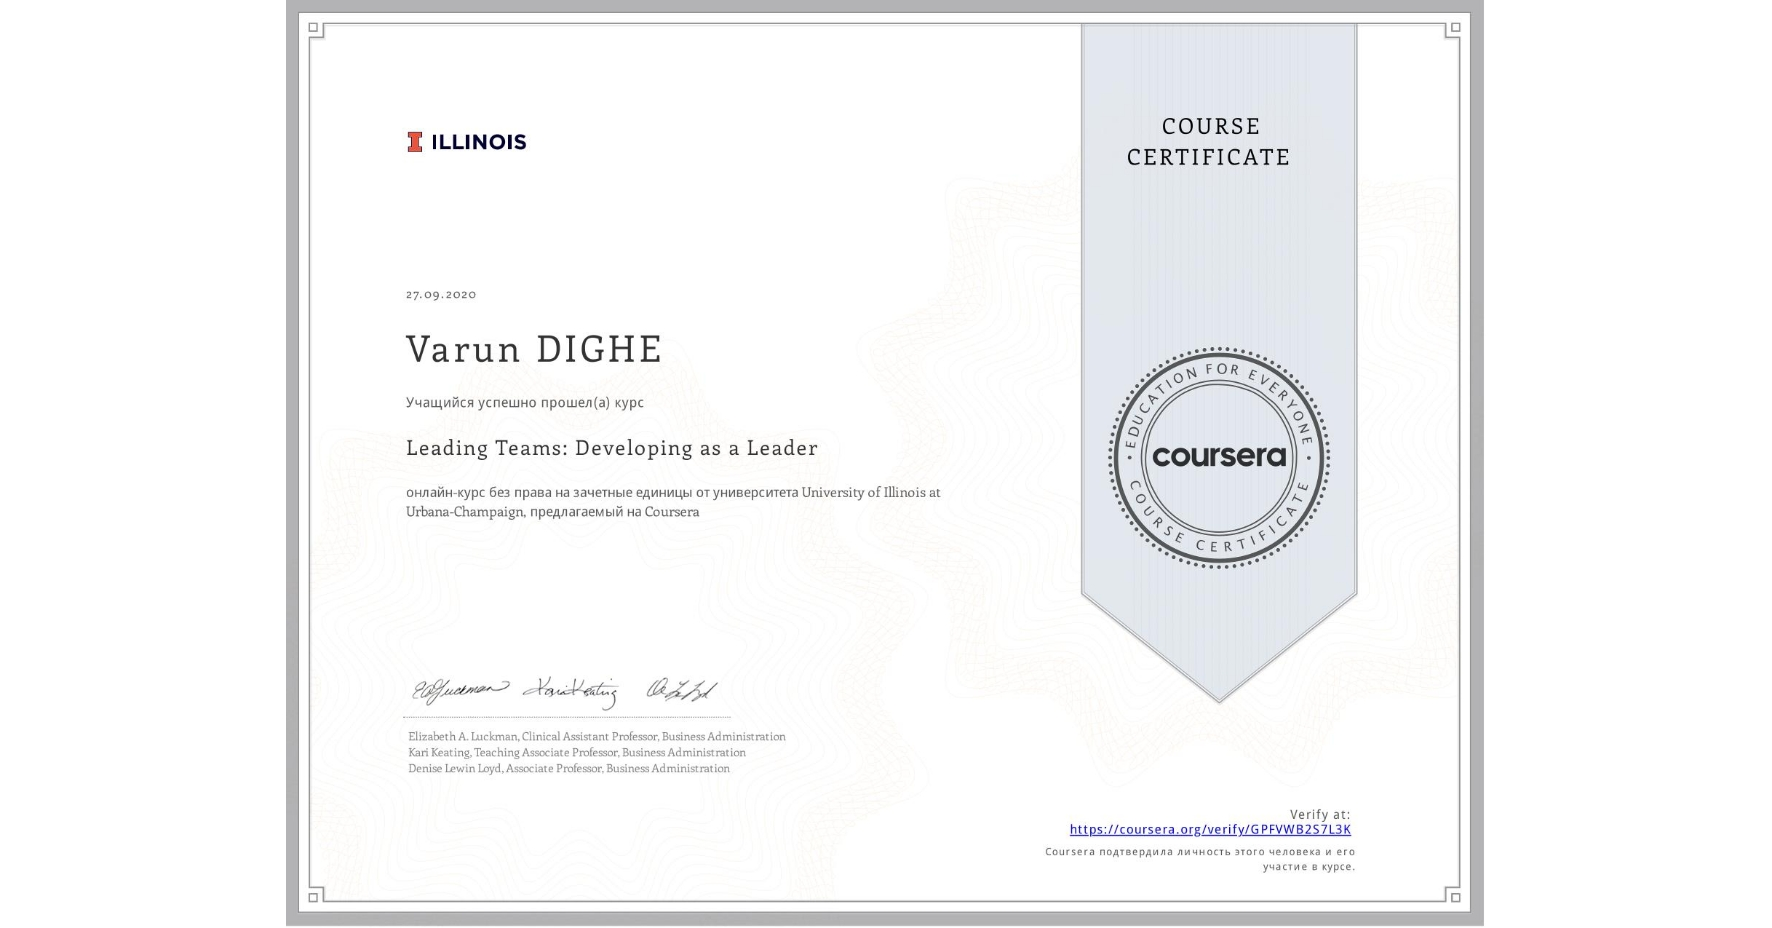 View certificate for VARUN ABHAY  DIGHE, Foundations of Everyday Leadership, an online non-credit course authorized by University of Illinois at Urbana-Champaign and offered through Coursera